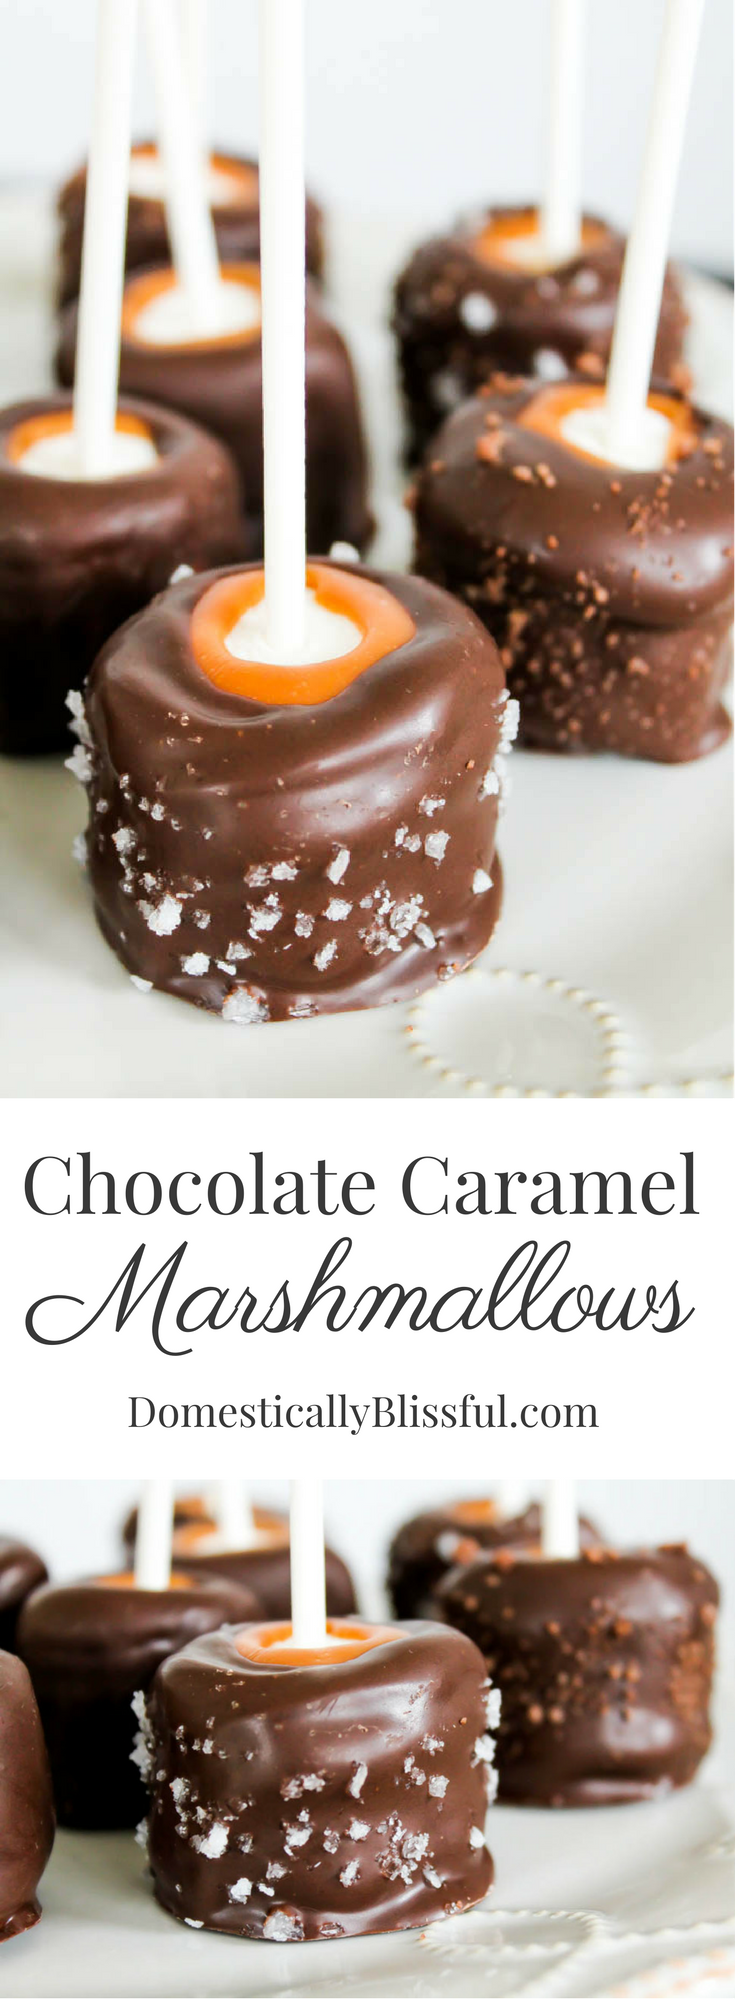 Chocolate Caramel Marshmallows Chocolate Caramel Marshmallow are a delicious treat, especially when sprinkled with chocolate sea salt!